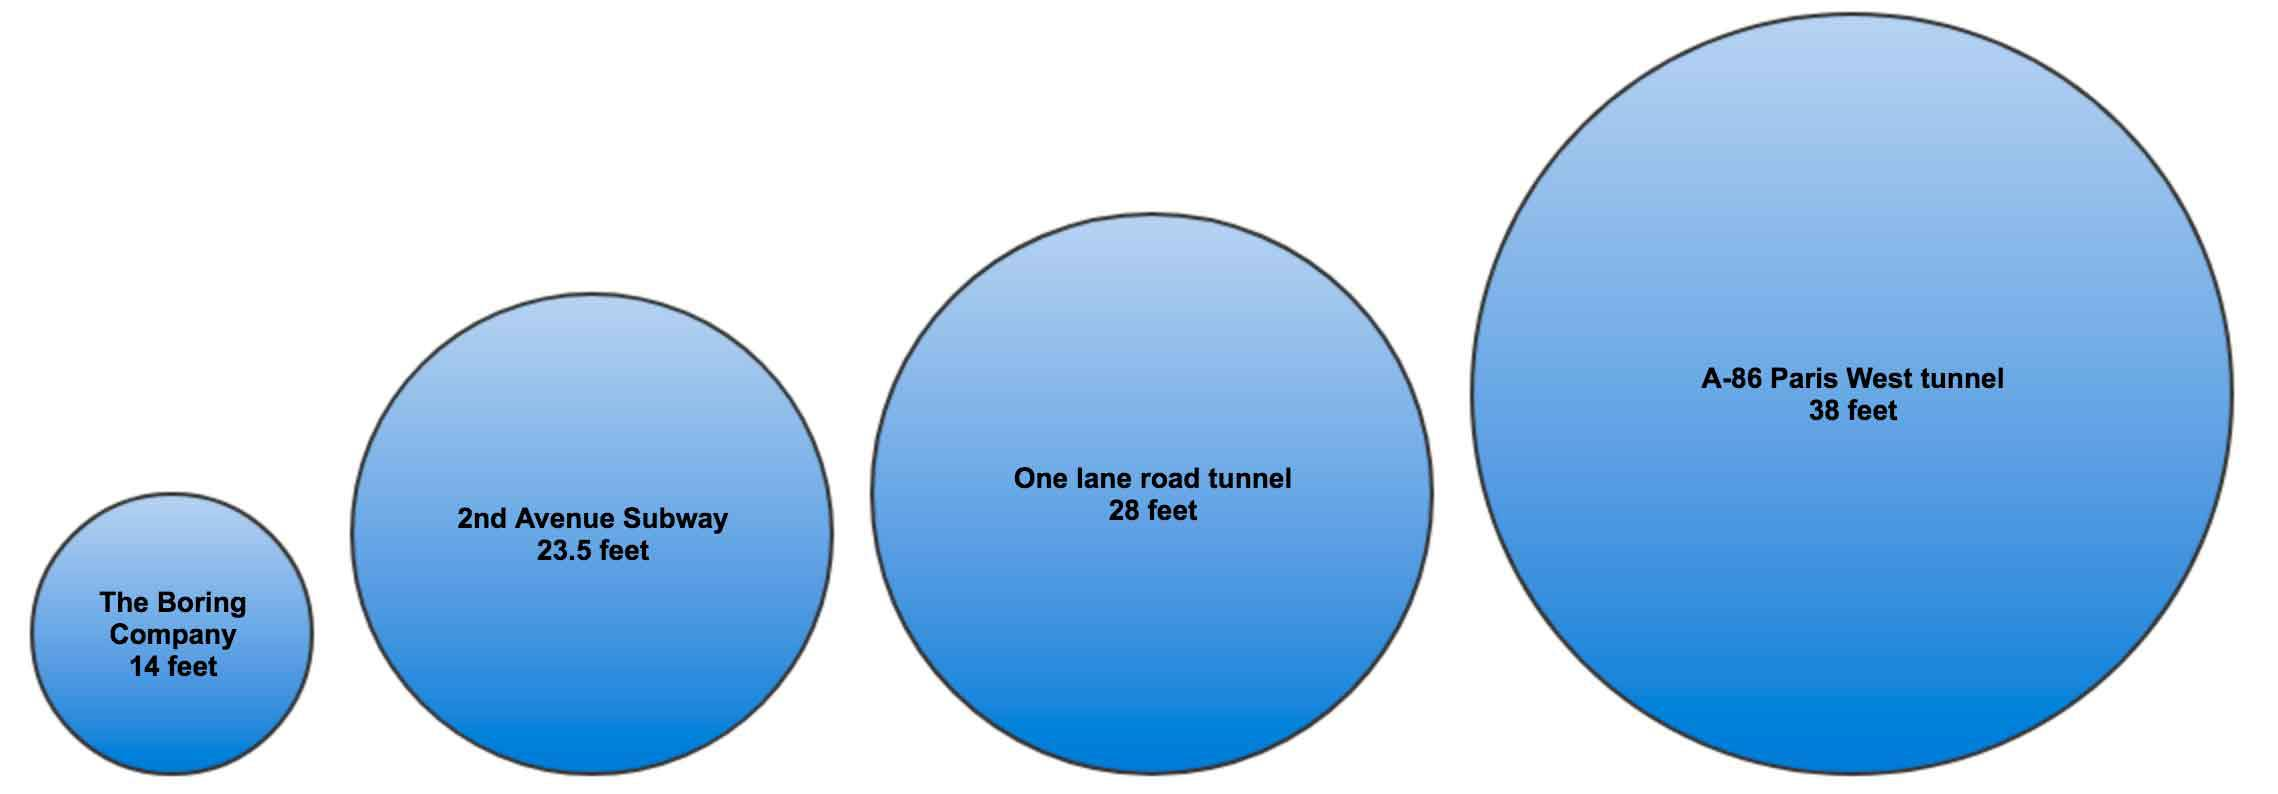 The Boring Company tunnel sizes